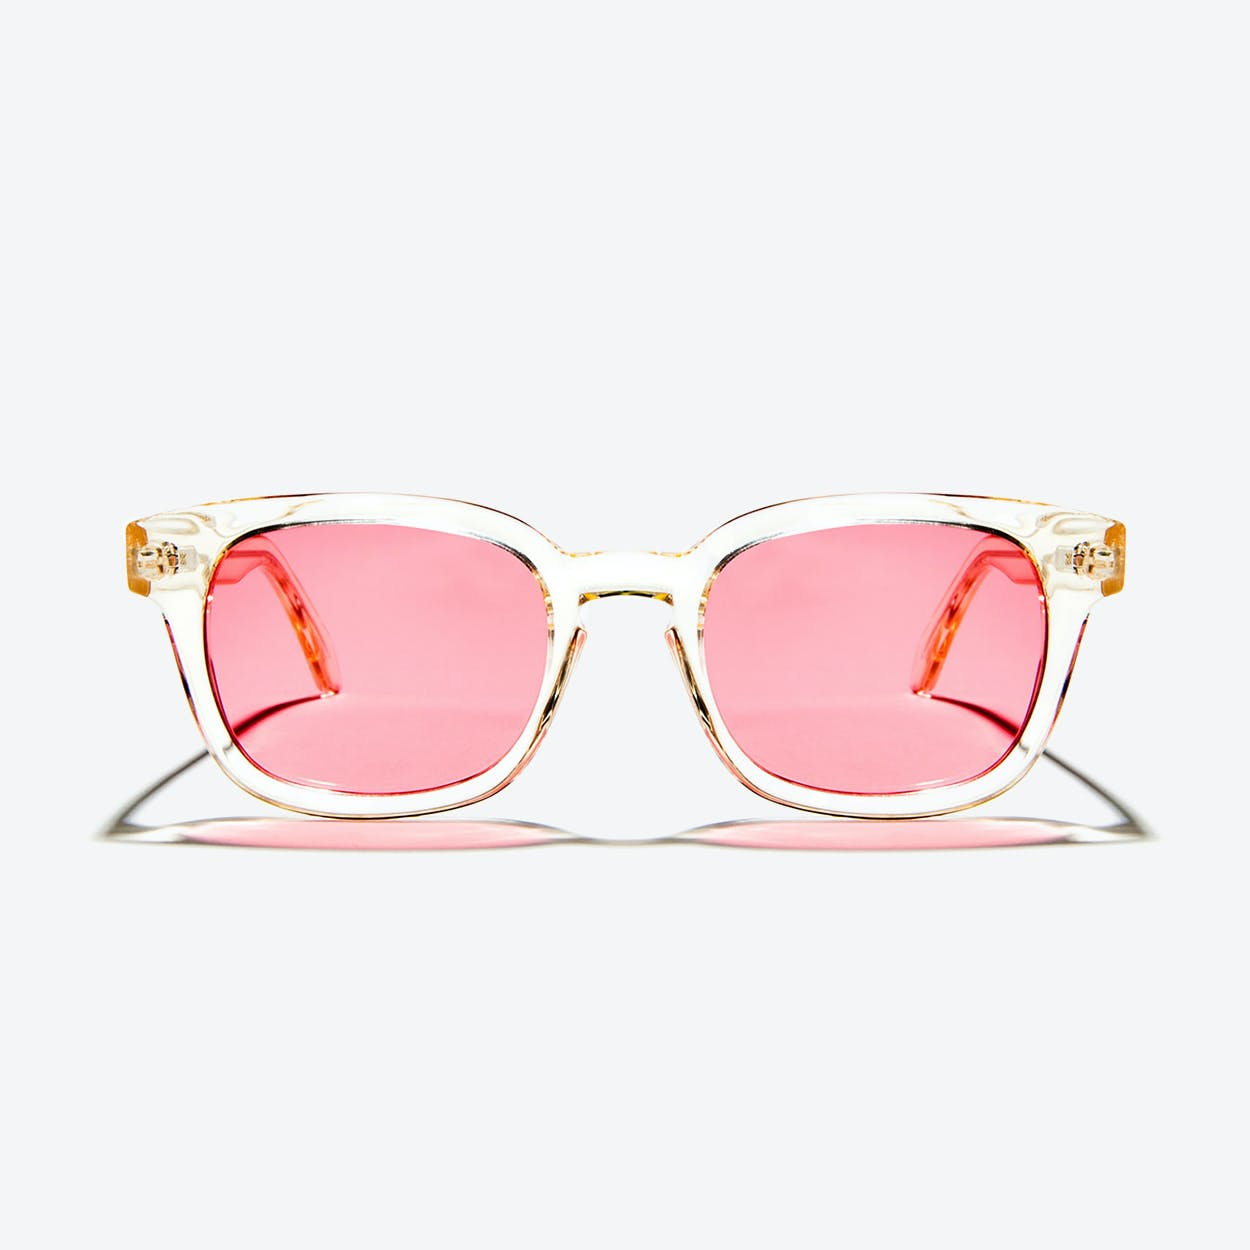 Minos Sunglasses in Crystal Champagne